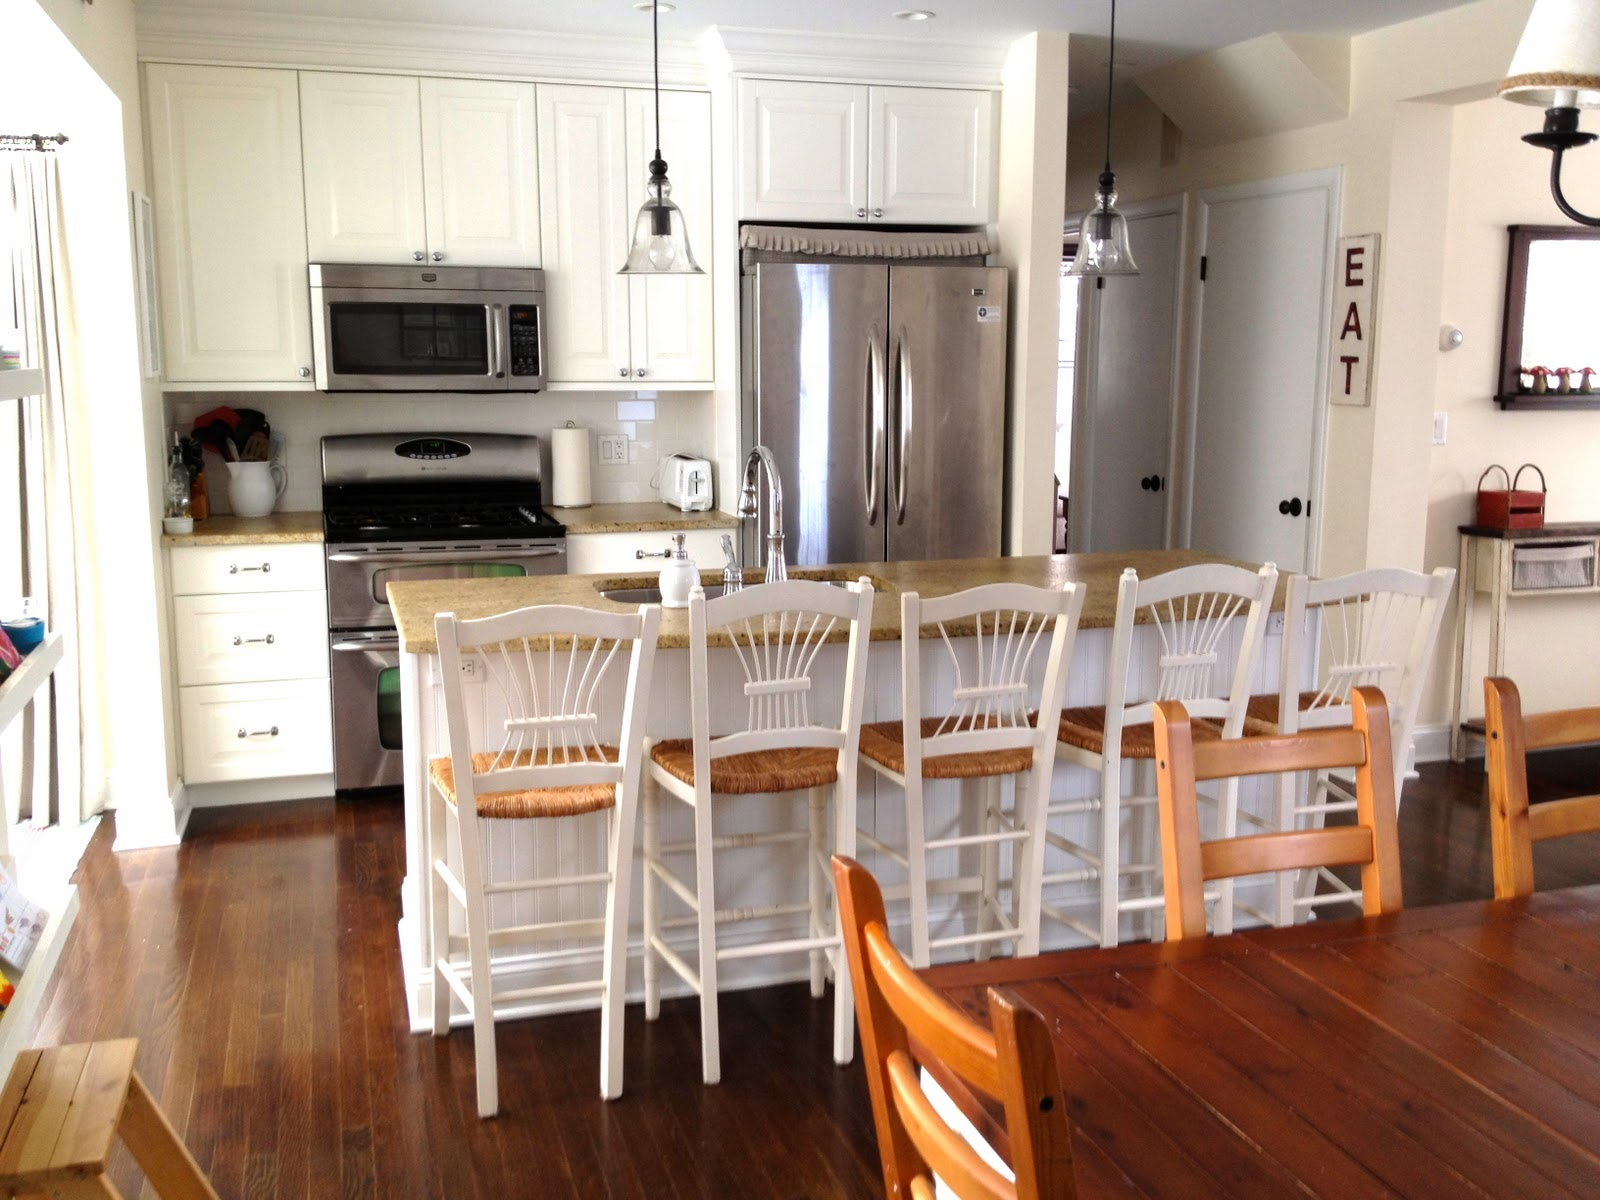 Small Kitchen Island Ideas: Pictures & Tips From HGTV   HGTV